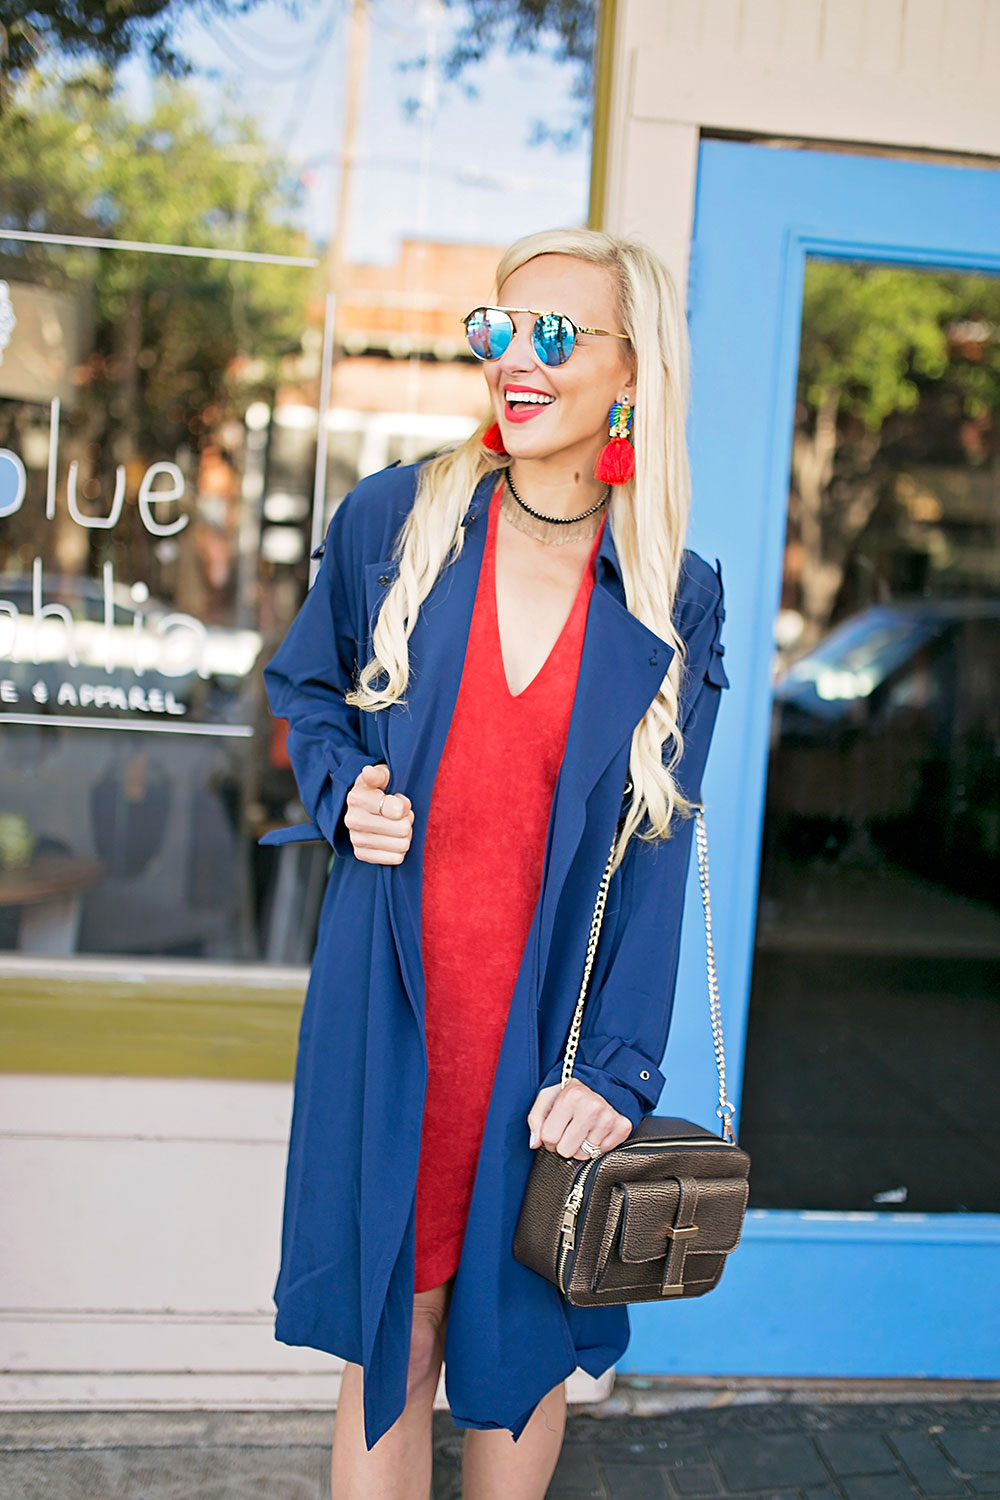 vandi-fair-blog-lauren-vandiver-dallas-texas-southern-fashion-blogger-the-styled-collection-red-halter-dress-suede-ramona-bronze-crossbody-bag-red-fringe-statement-earrings-in-the-trenches-jacket